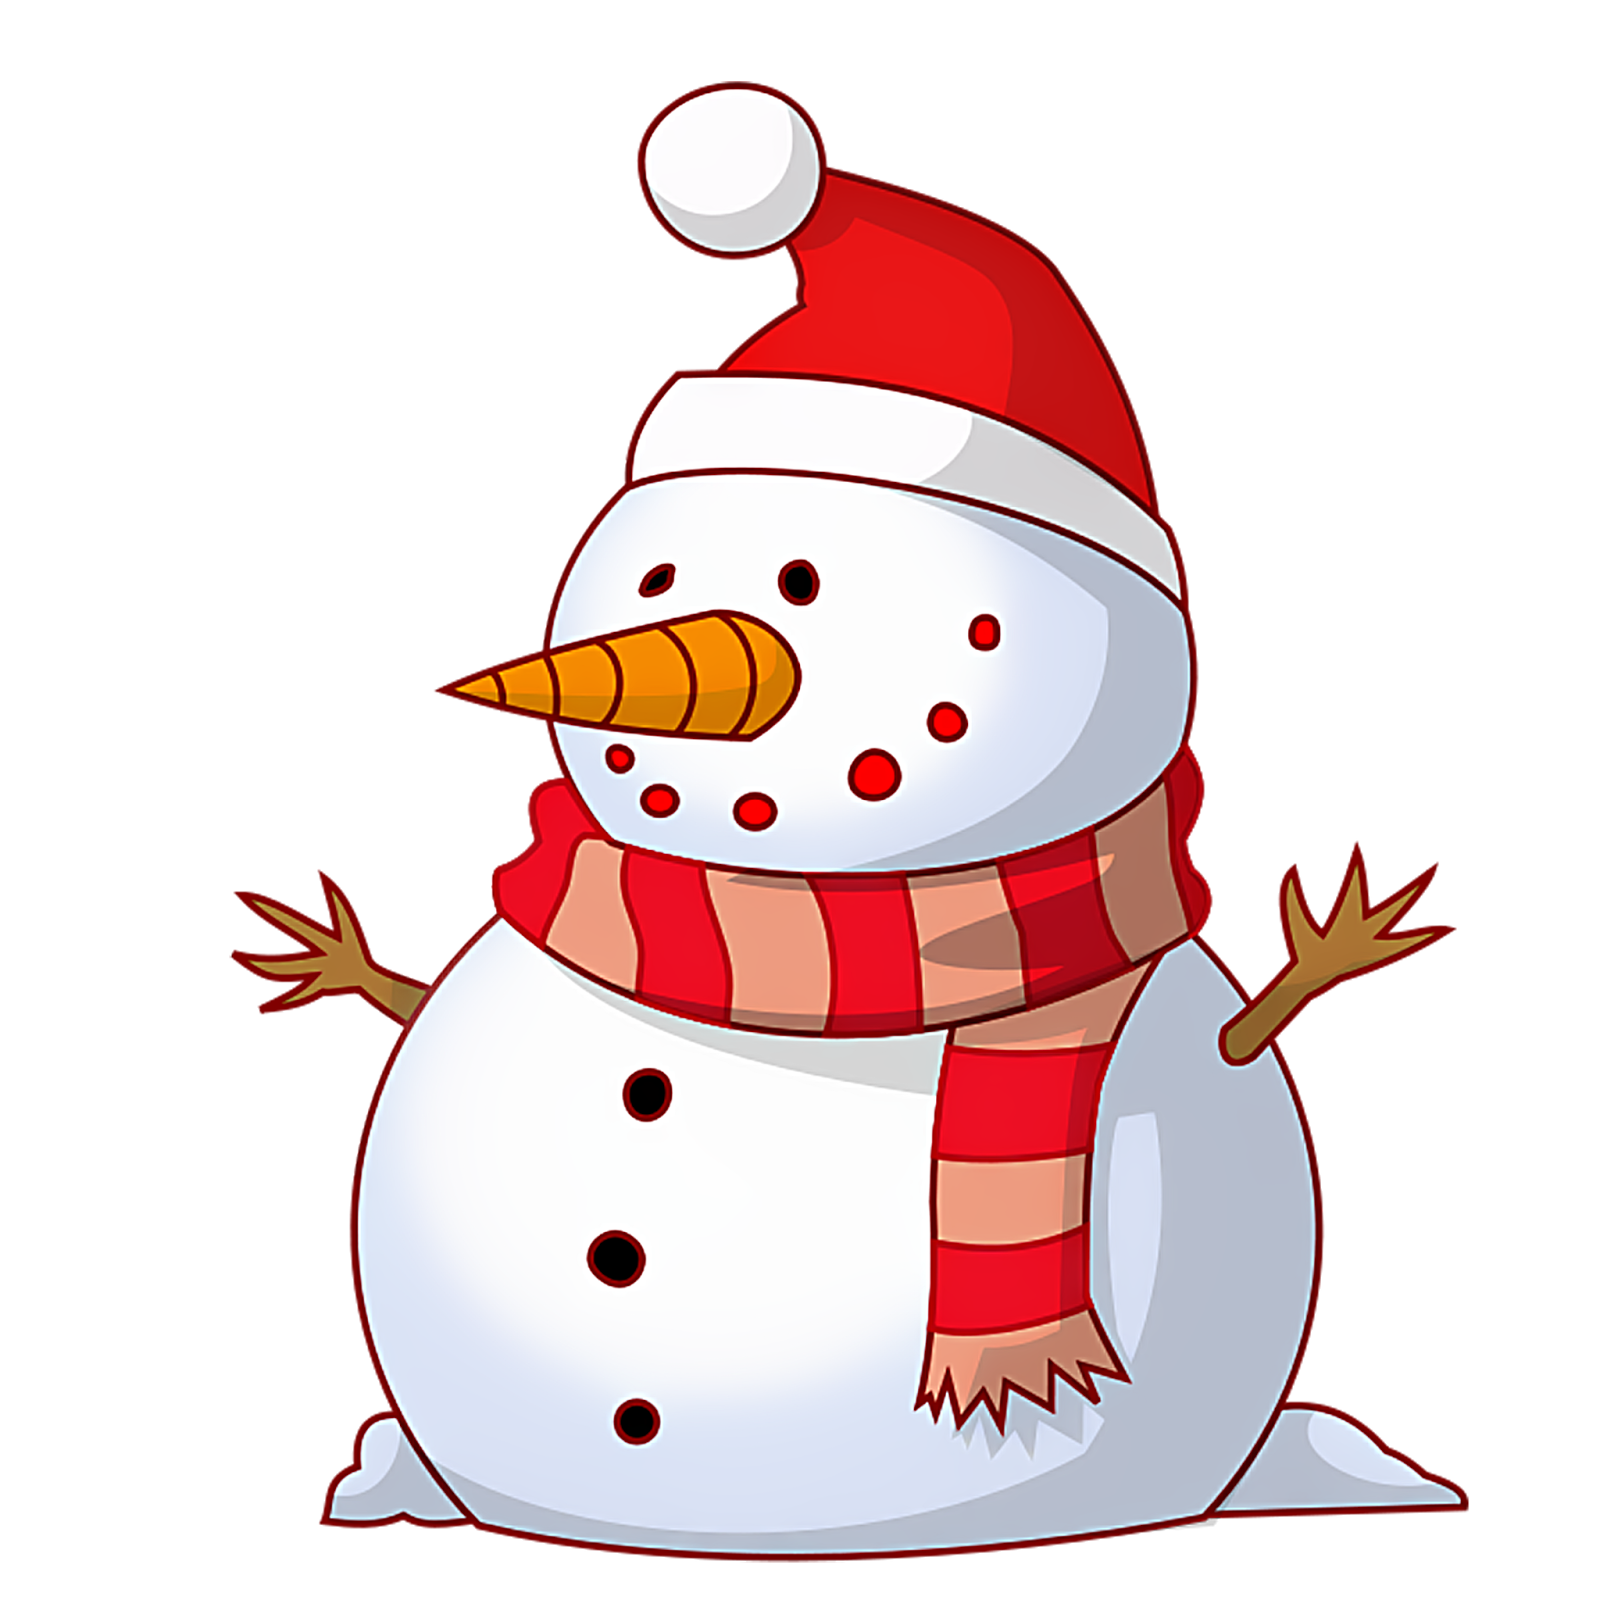 Free snowman clipart images 2.